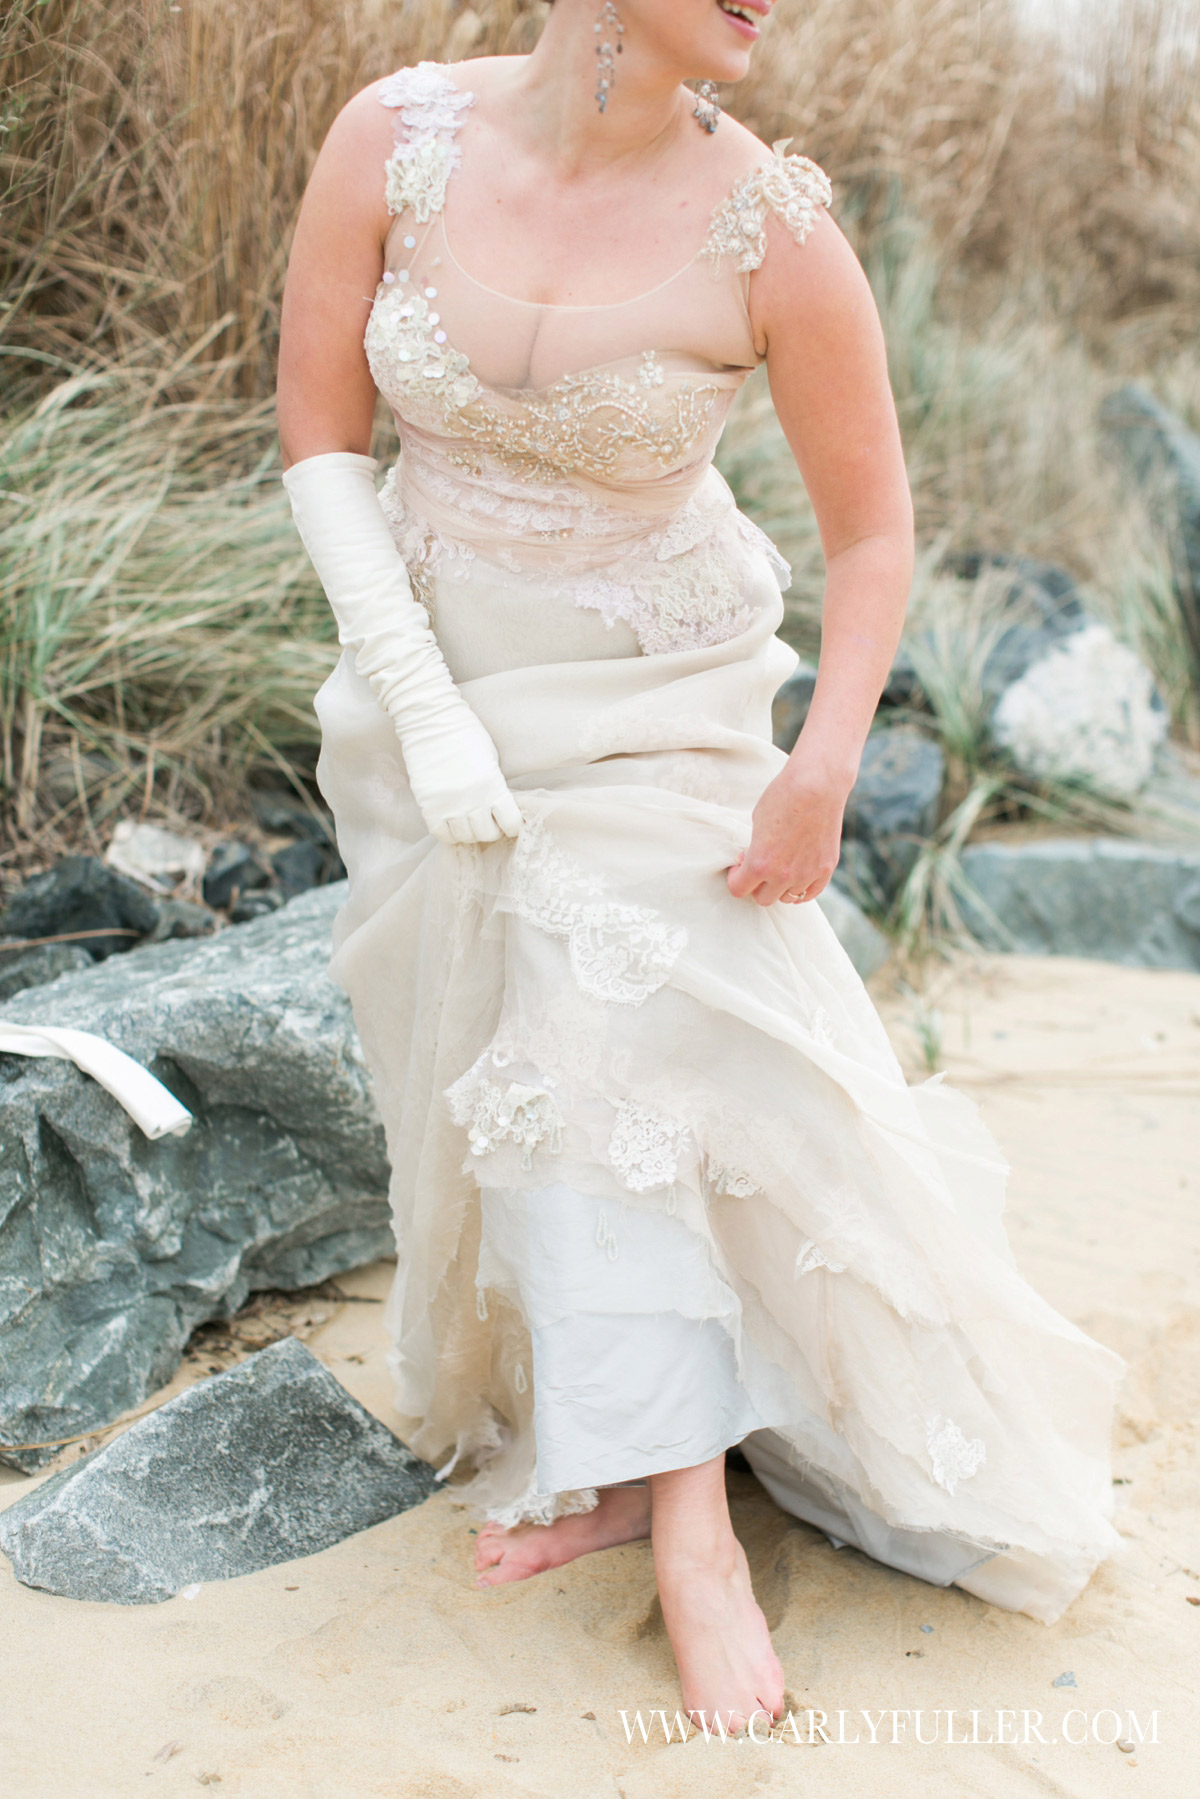 The Shipwreck Dress - Jill Andrews Gowns Couture